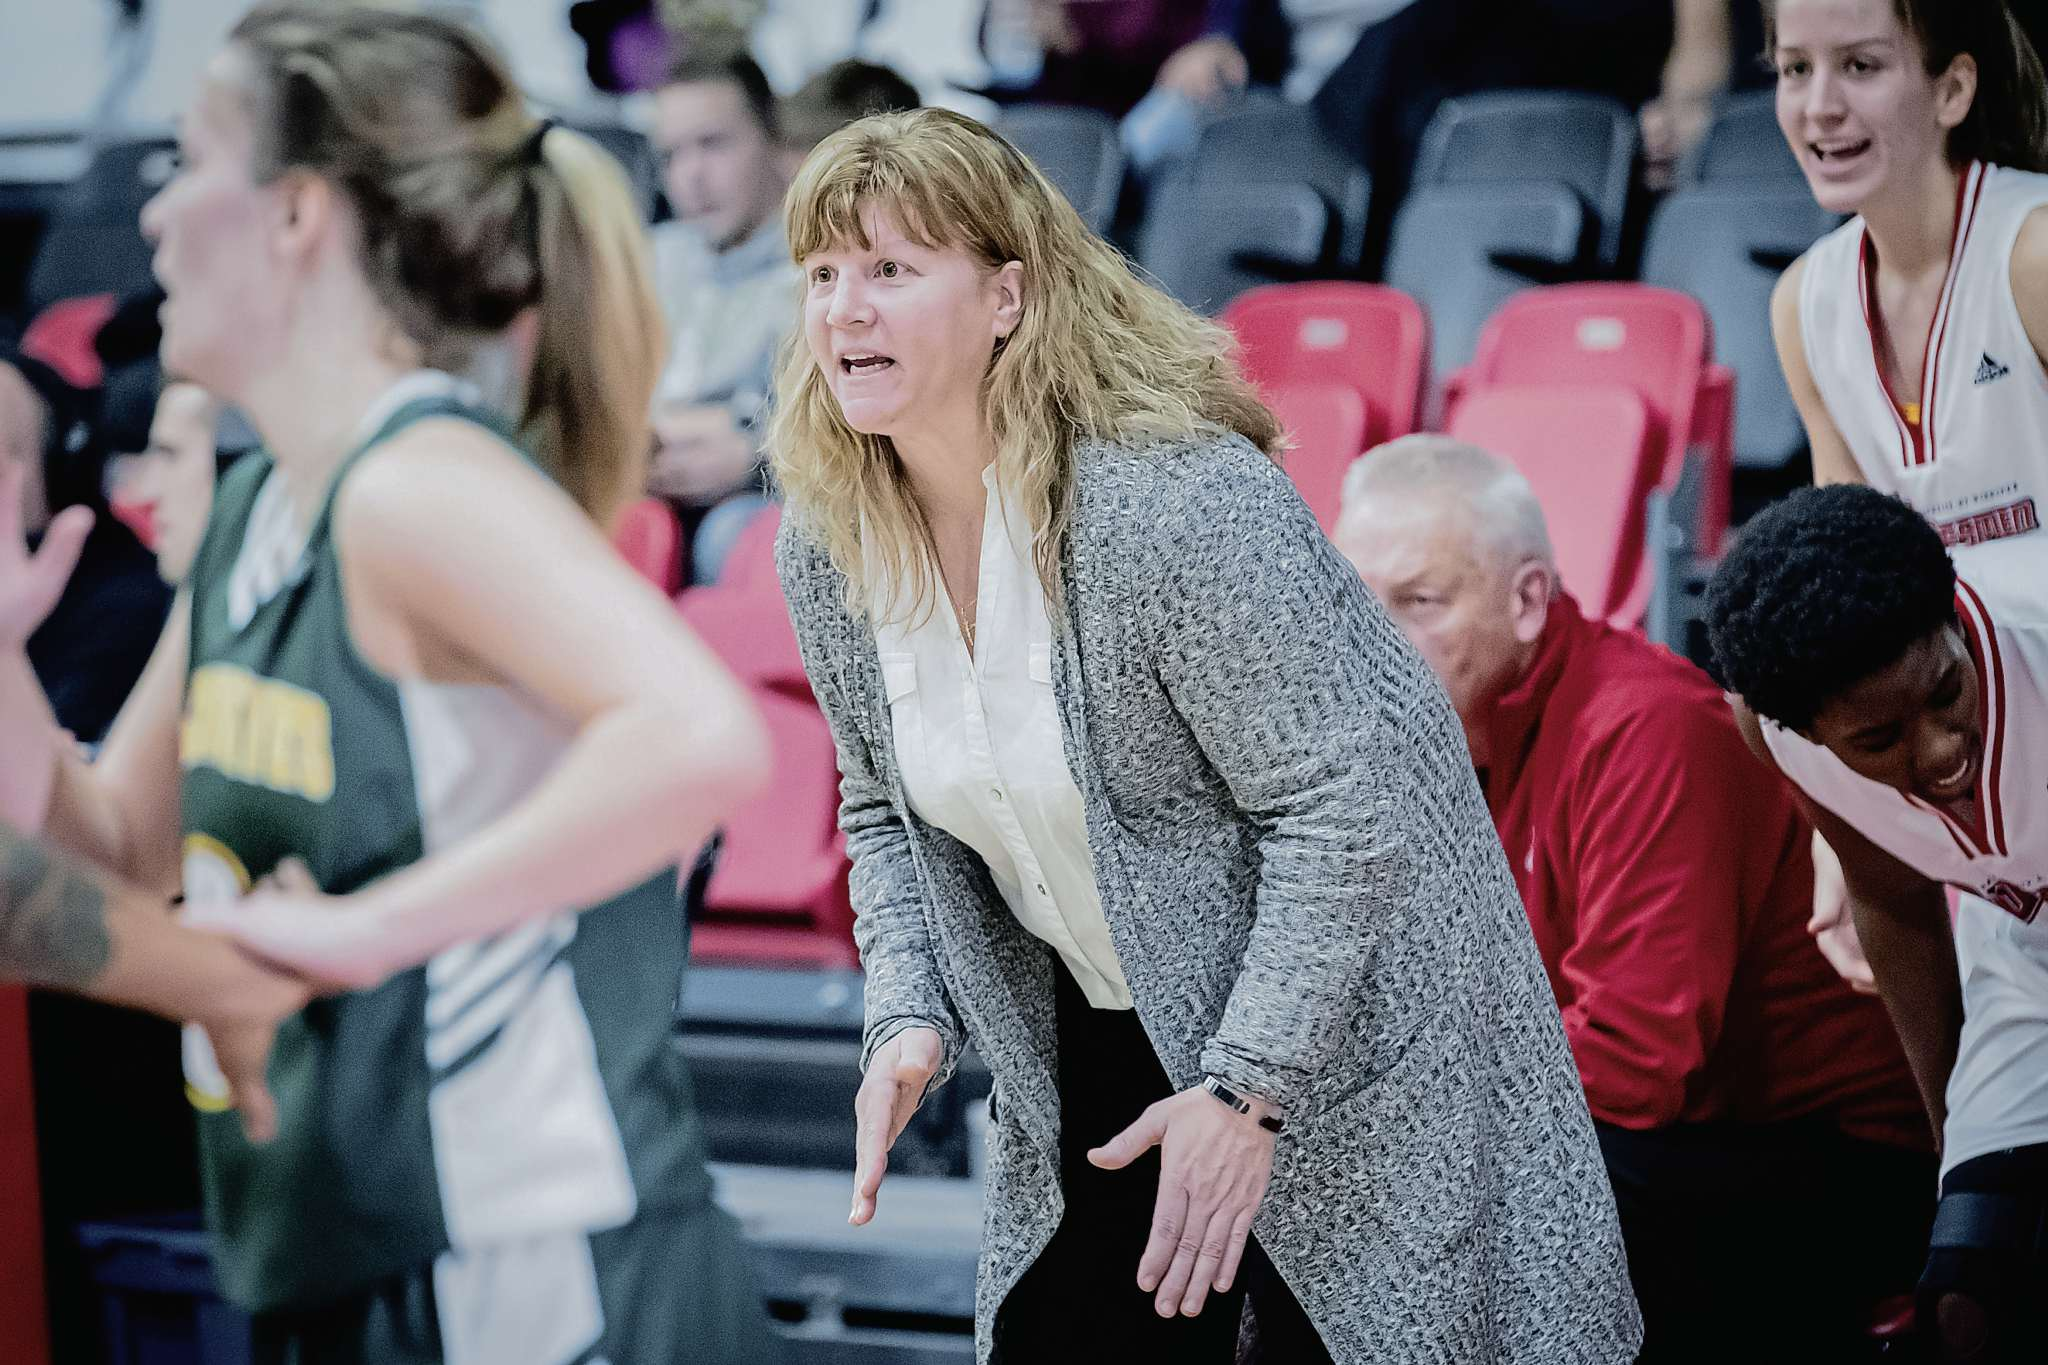 Tanya McKay has been coaching the Wesmen girls basketball team for over 20 years. She was named this year's coach of the year for the Canada West conference.